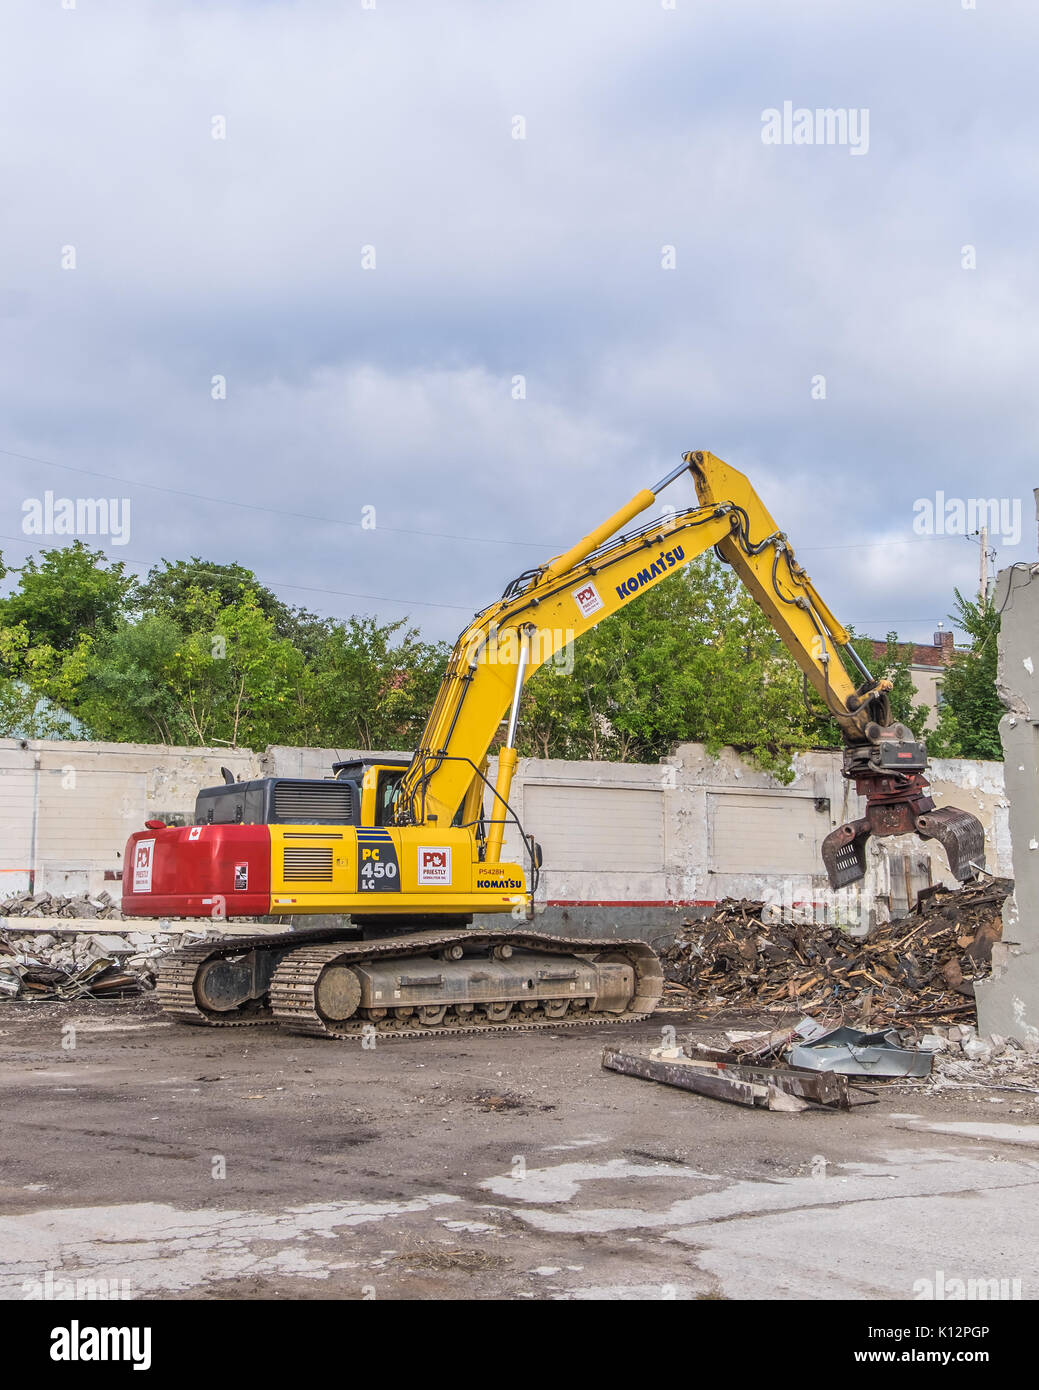 Heavy equipment demolishes an old building in downtown Orillia Ontario to make way for new condominiums. - Stock Image